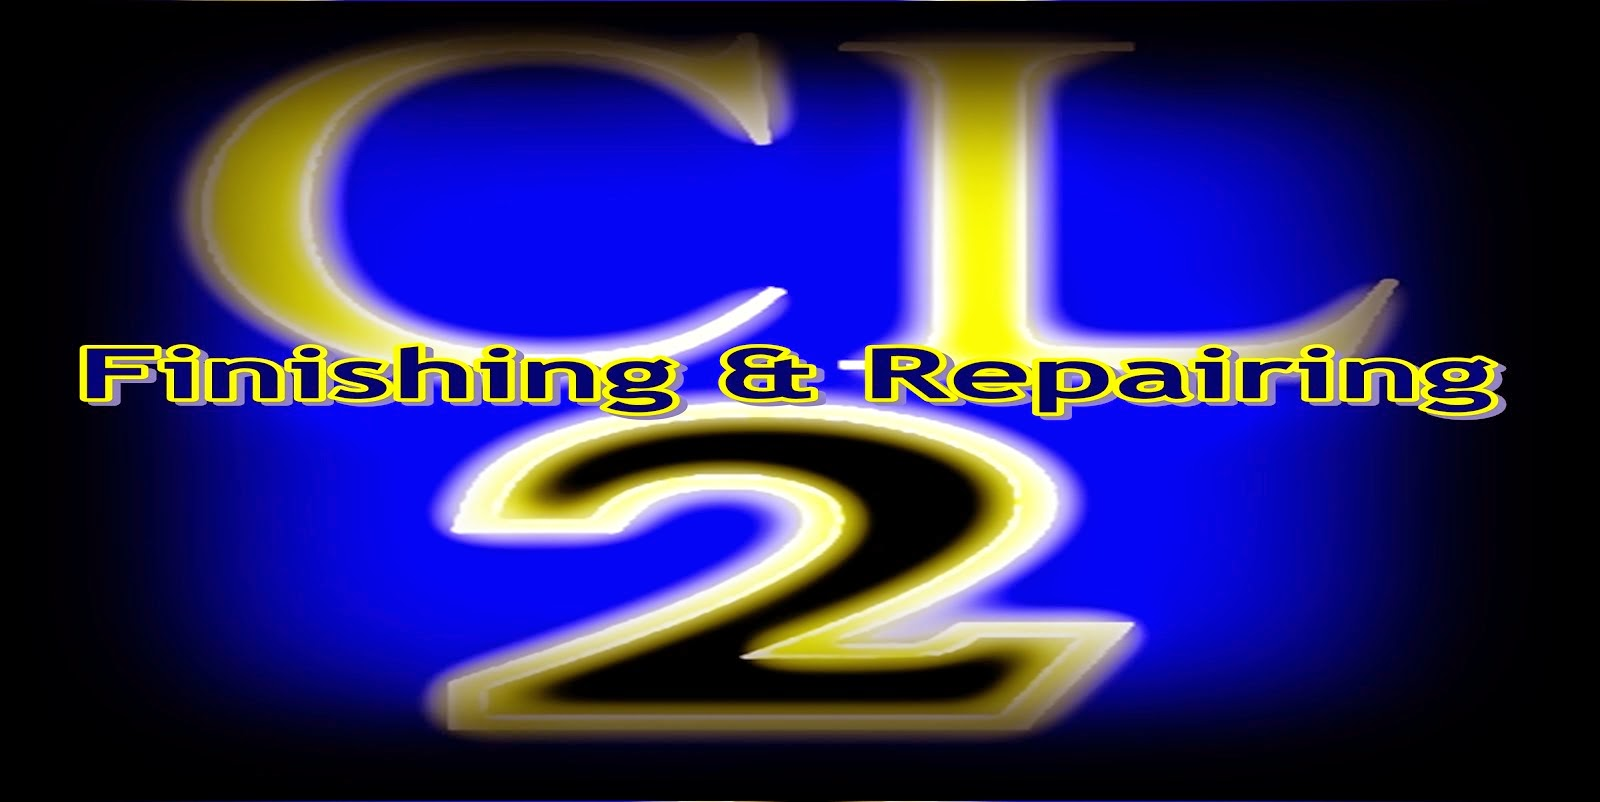 CL2revise Renovasi, Finishing & Repairing